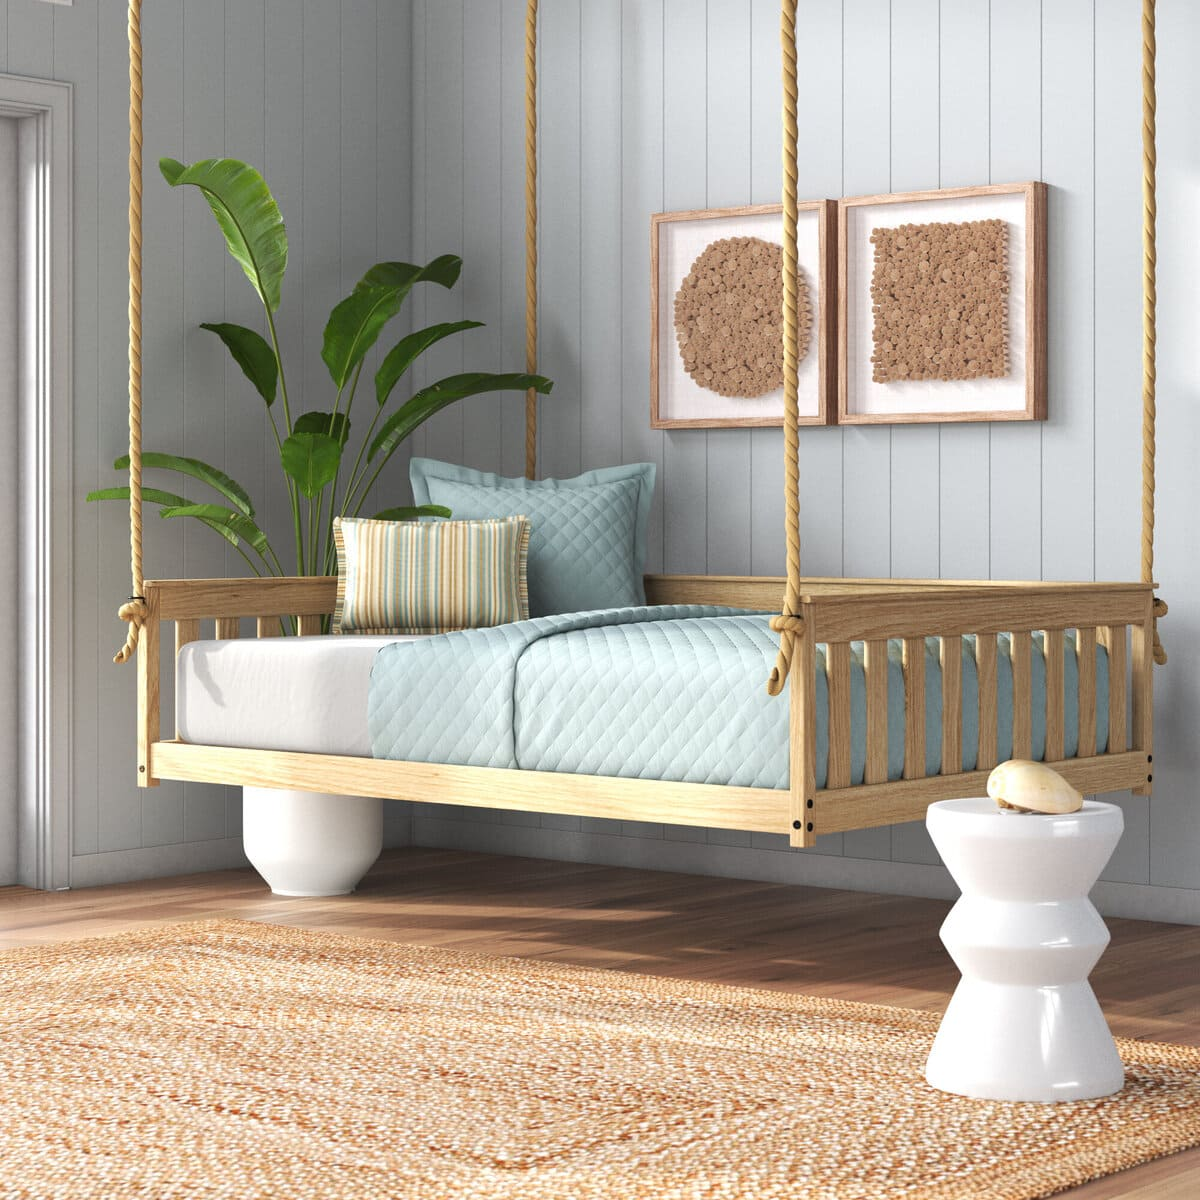 daybed 14 - 20 delightful daybeds that easily convert into comfortable beds